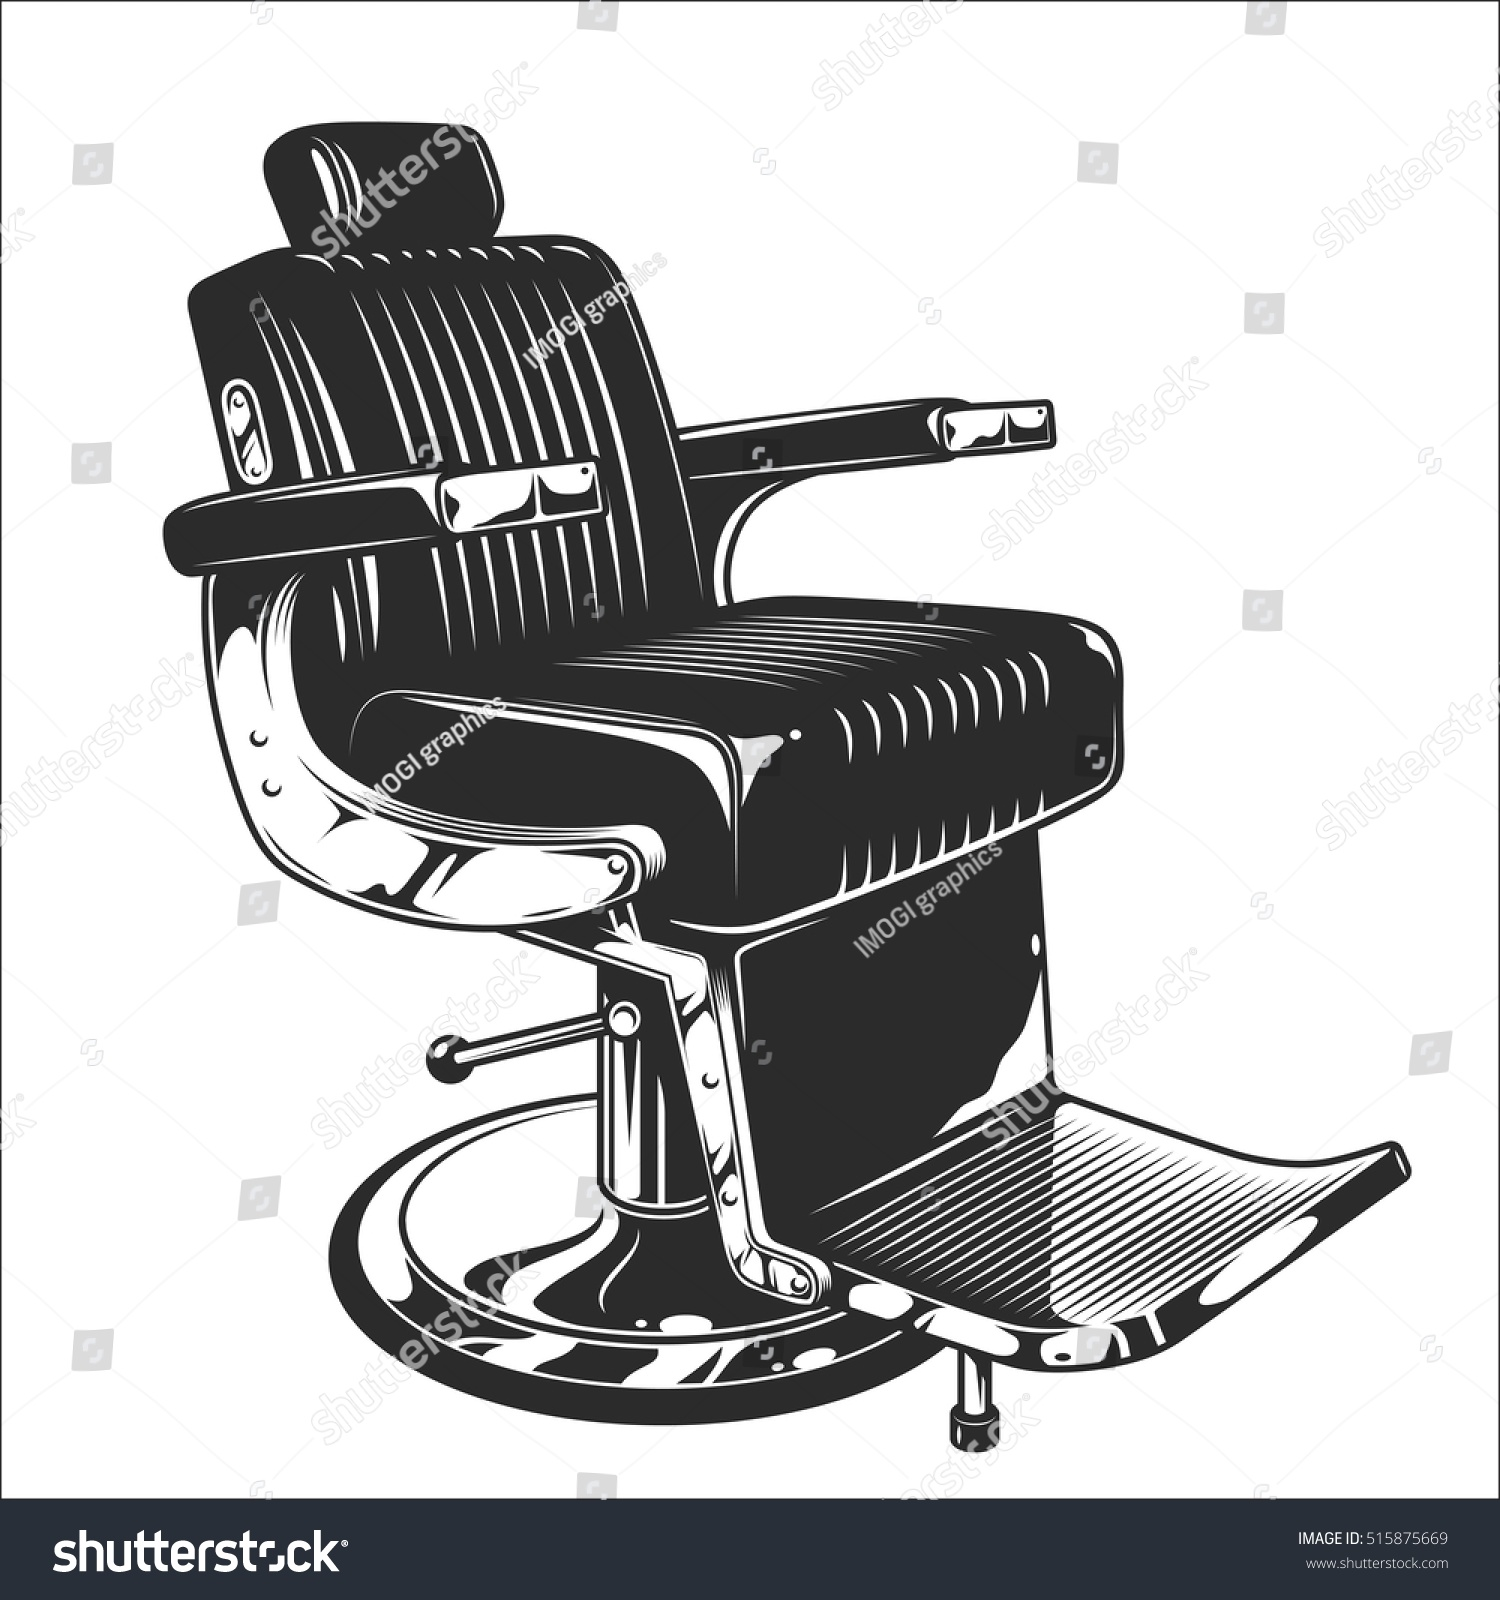 Hair salon chair isolated stock photos illustrations and vector art - Monochrome Illustration Of Barbershop Chair Leather With Chrome Elements Isolated On White Background